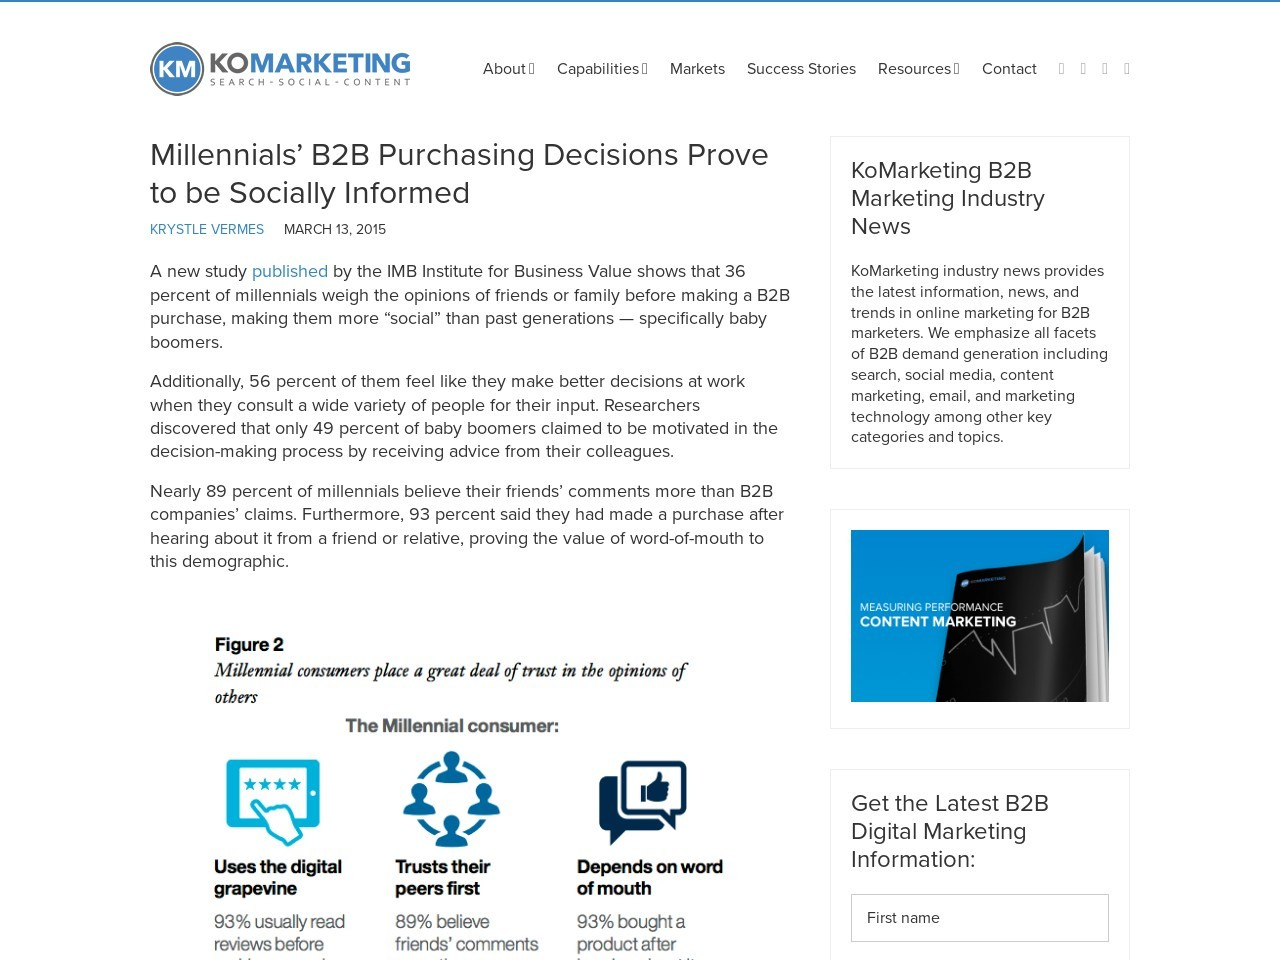 Millennials' B2B Purchasing Decisions Prove to be Socially Informed